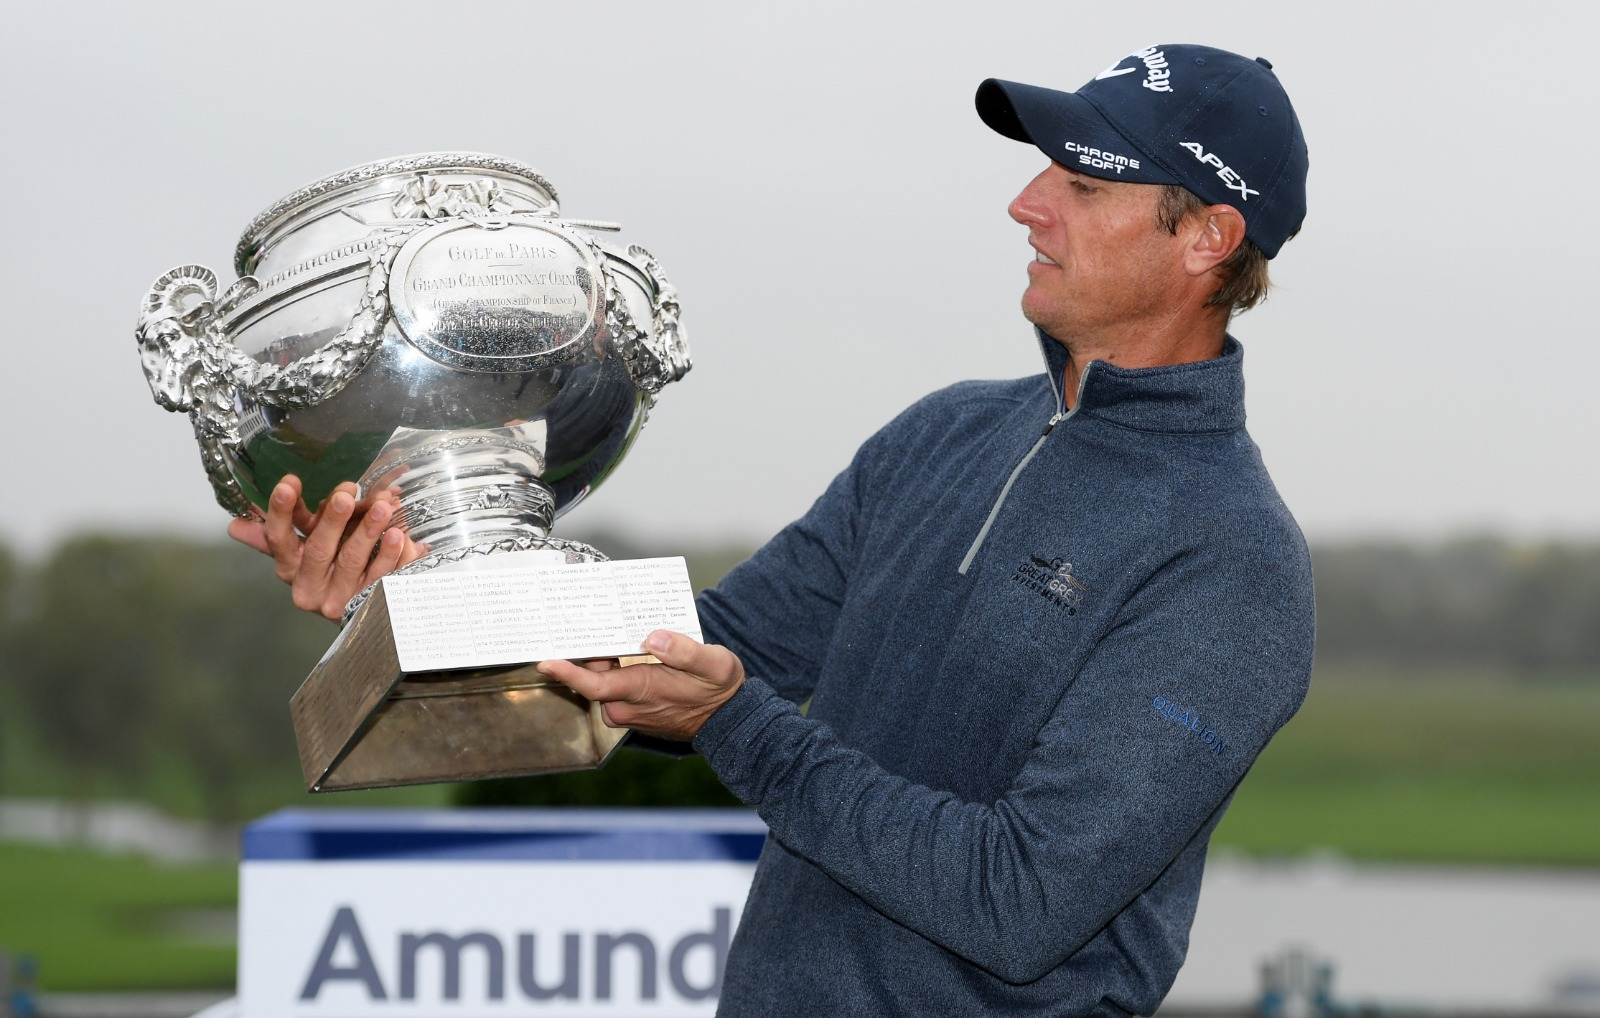 Dunning staff player Nicolas Colsaerts holding trophy after win